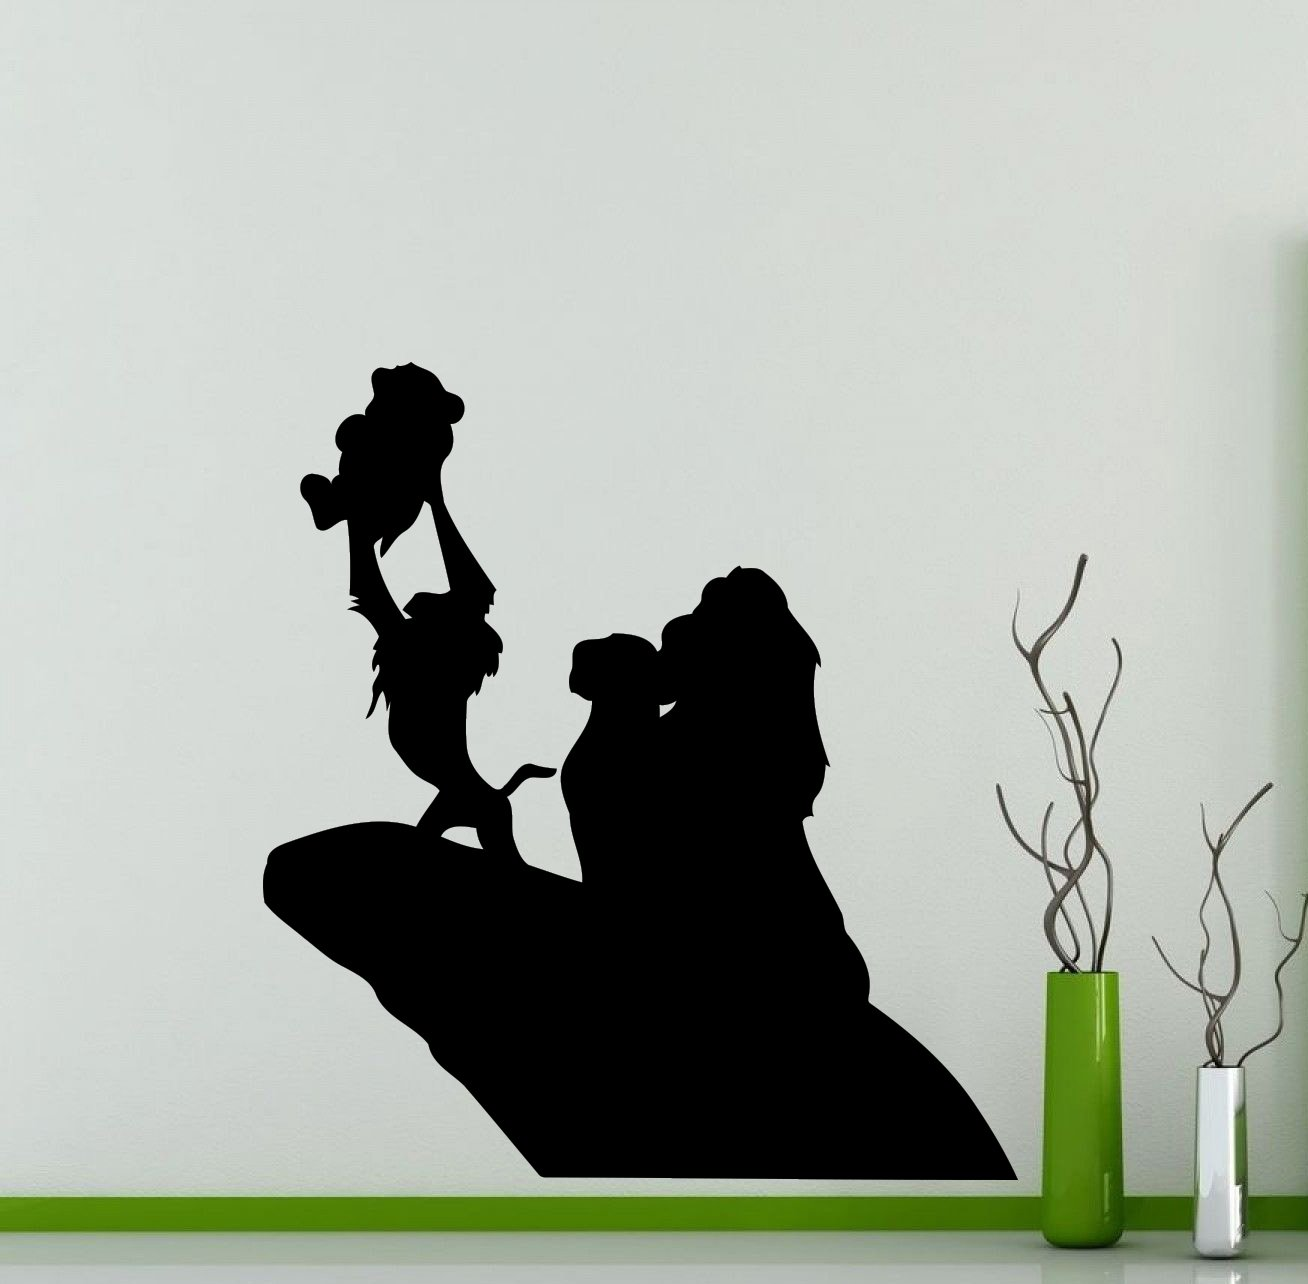 Lion King Wall Decal Simba Pumbaa Timon Scar Vinyl Sticker Home Nursery Kids Boy Girl Room Interior Art Decoration Any Room Mural Waterproof Vinyl Sticker (217xx)